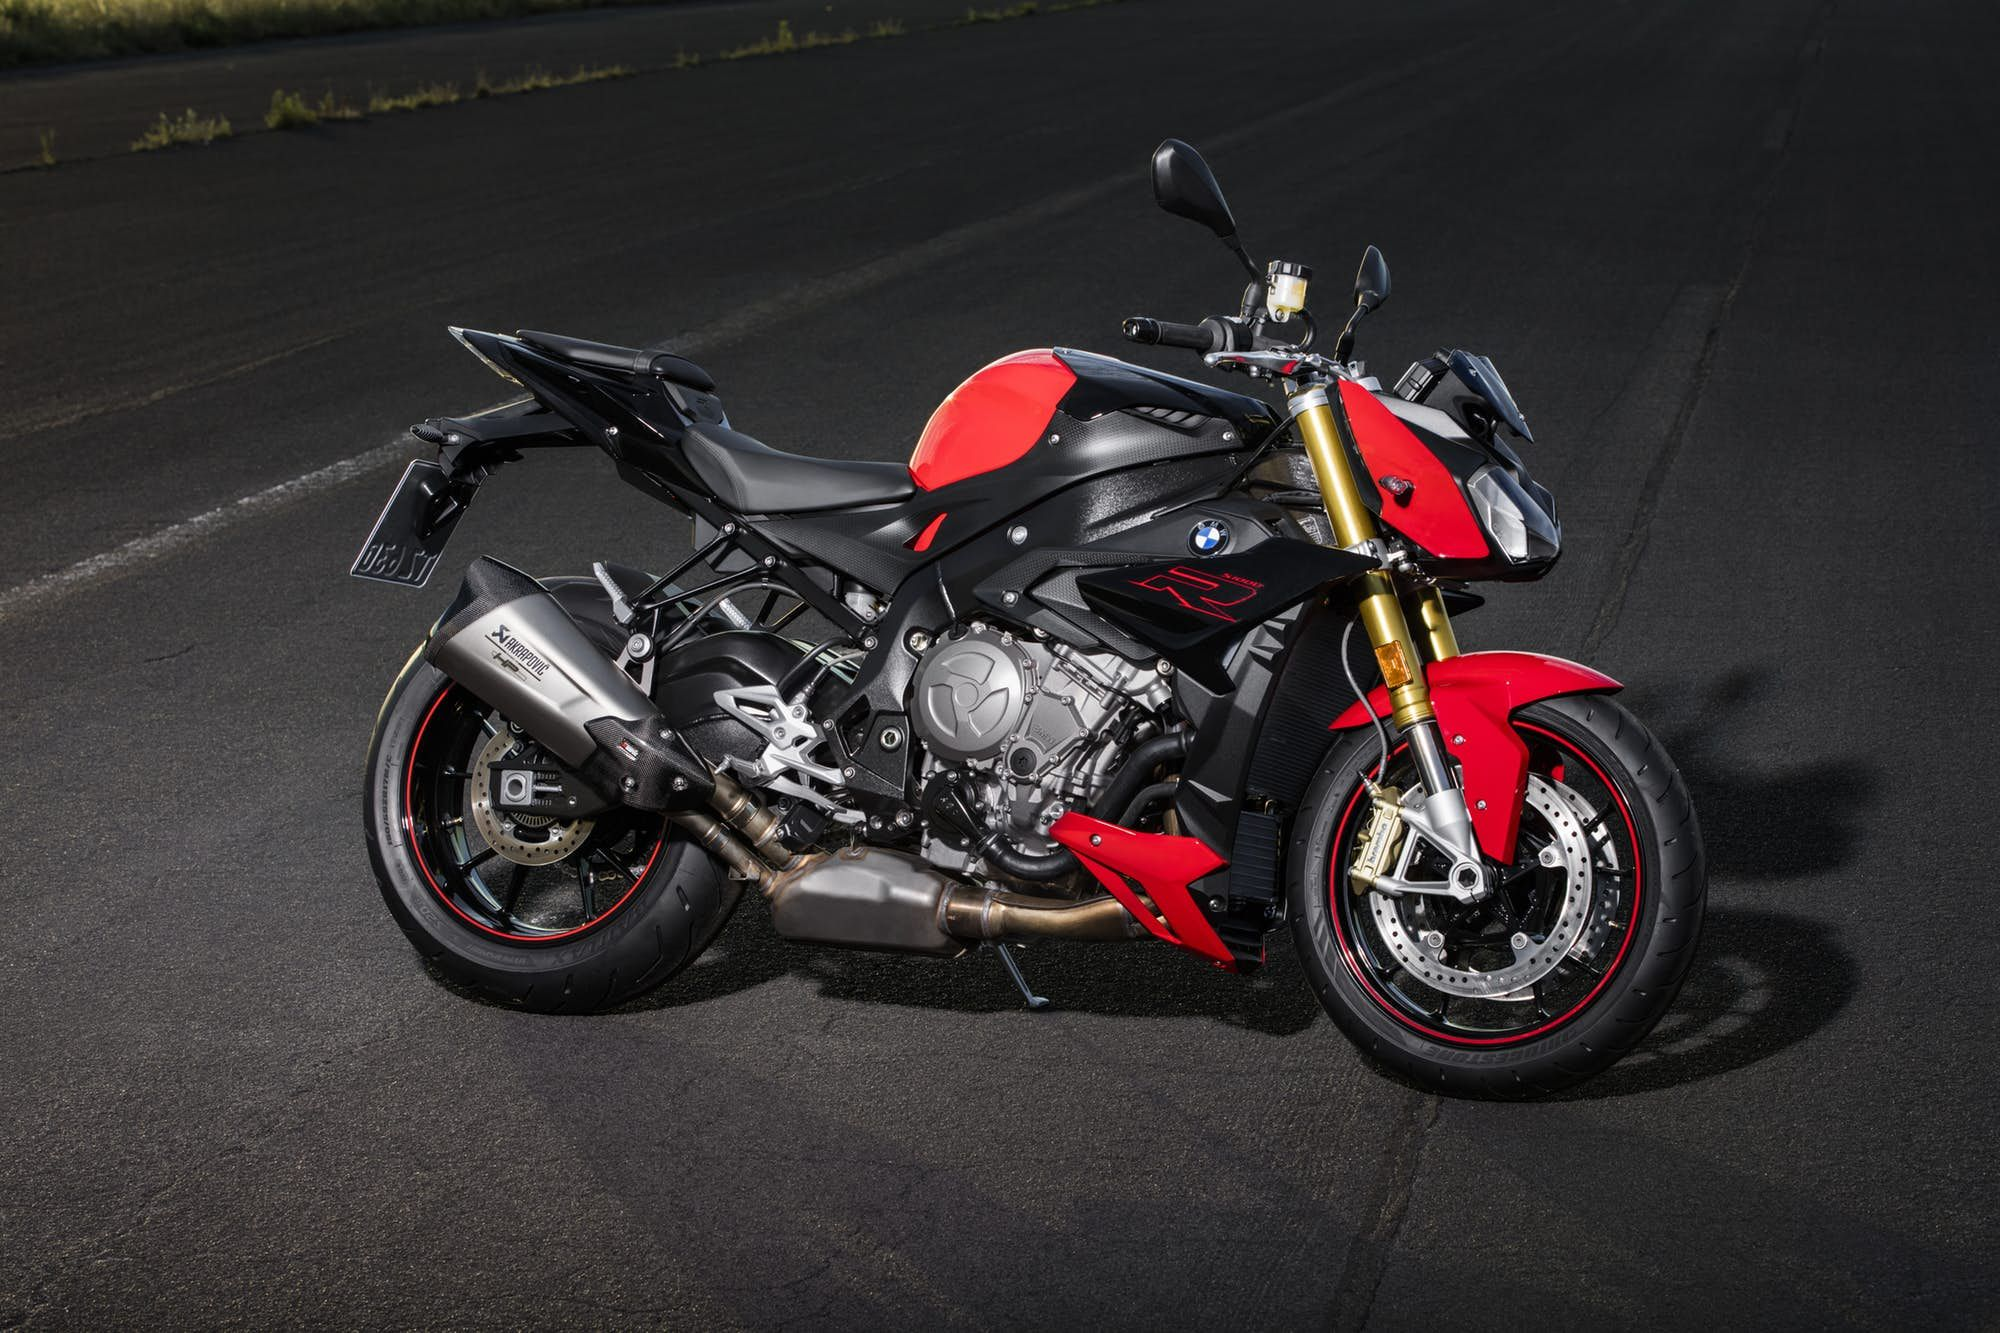 2017 Bmw S1000r Review This Unassuming German Streetbike Might Be The Wildest Thing On The Road 2017 Bmw Bmw Bmw Motorrad